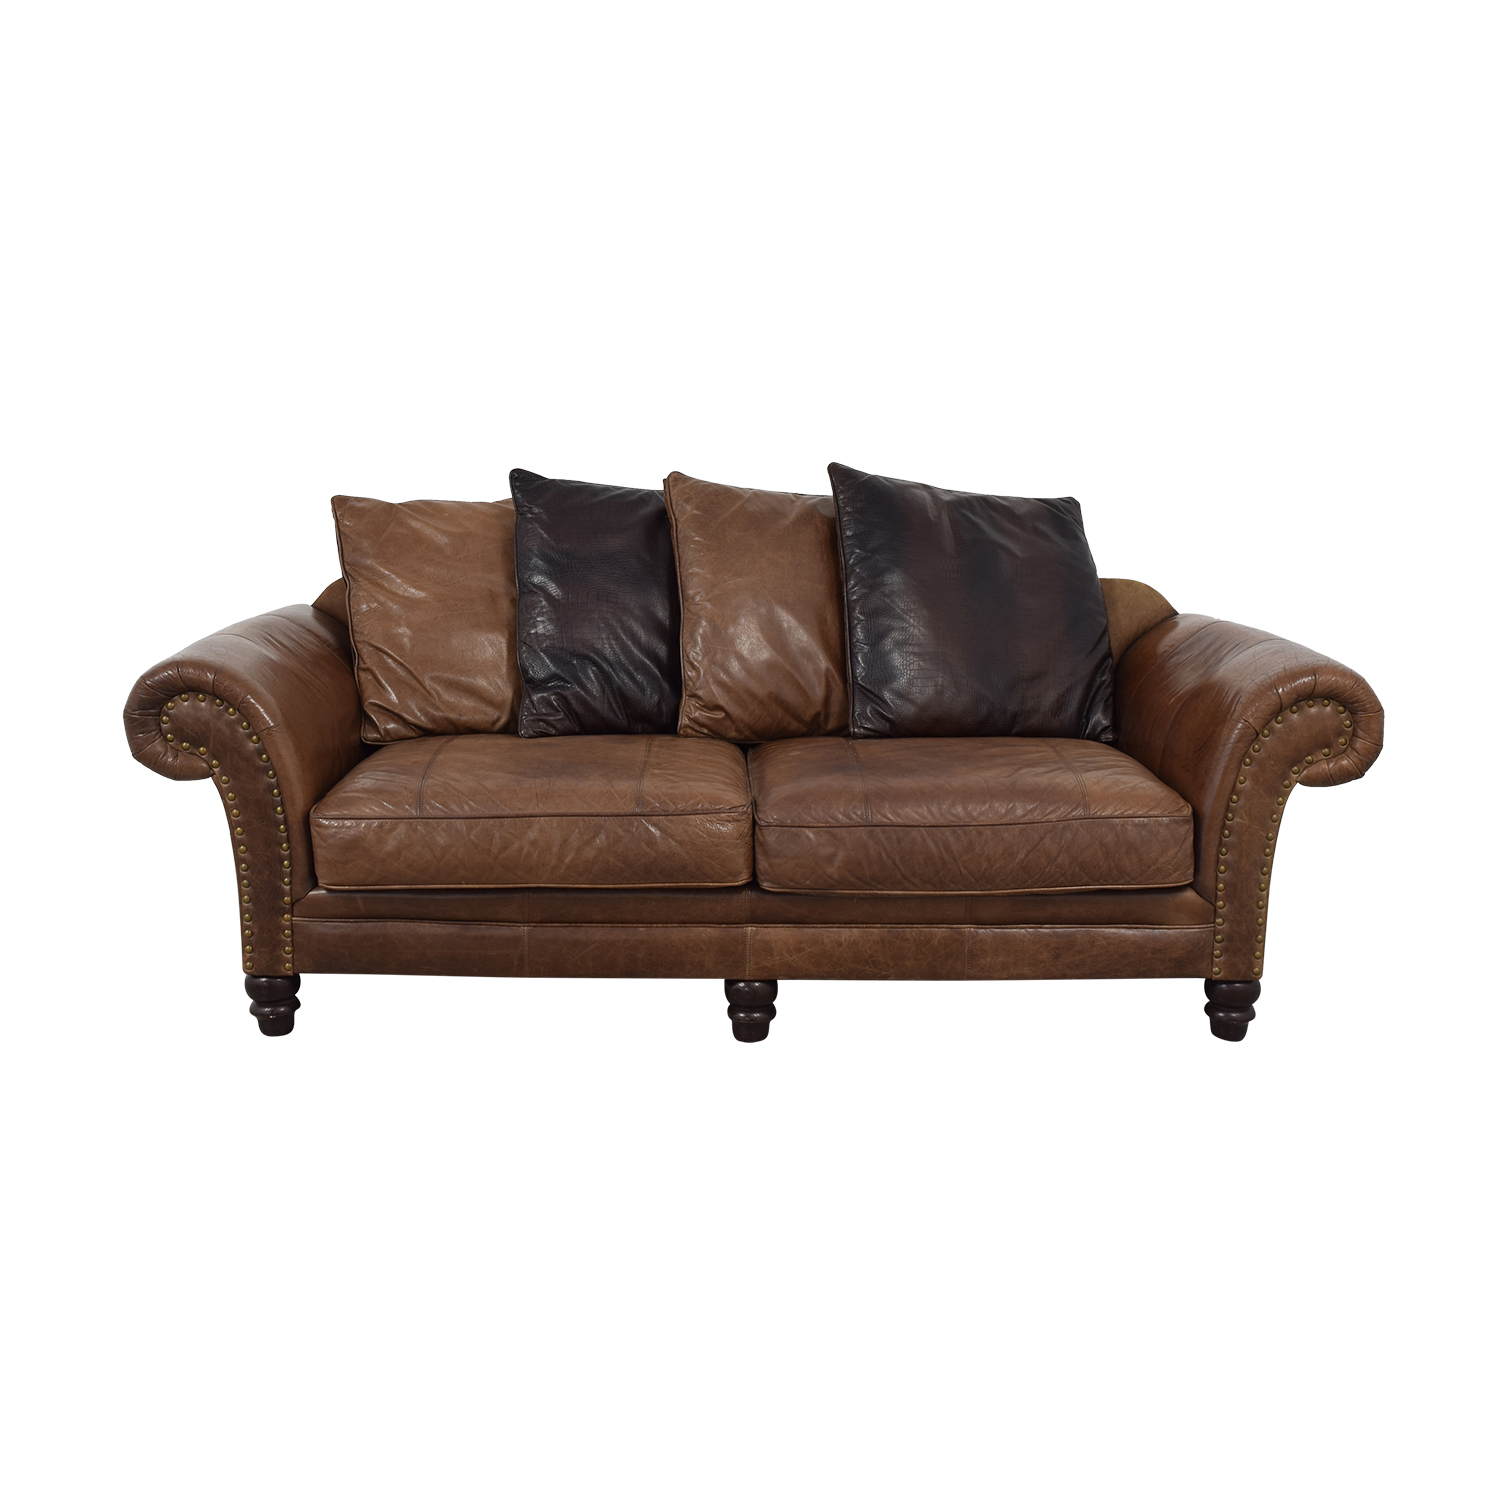 87 Off Bernhardt Bernhardt Leather Sofa Sofas